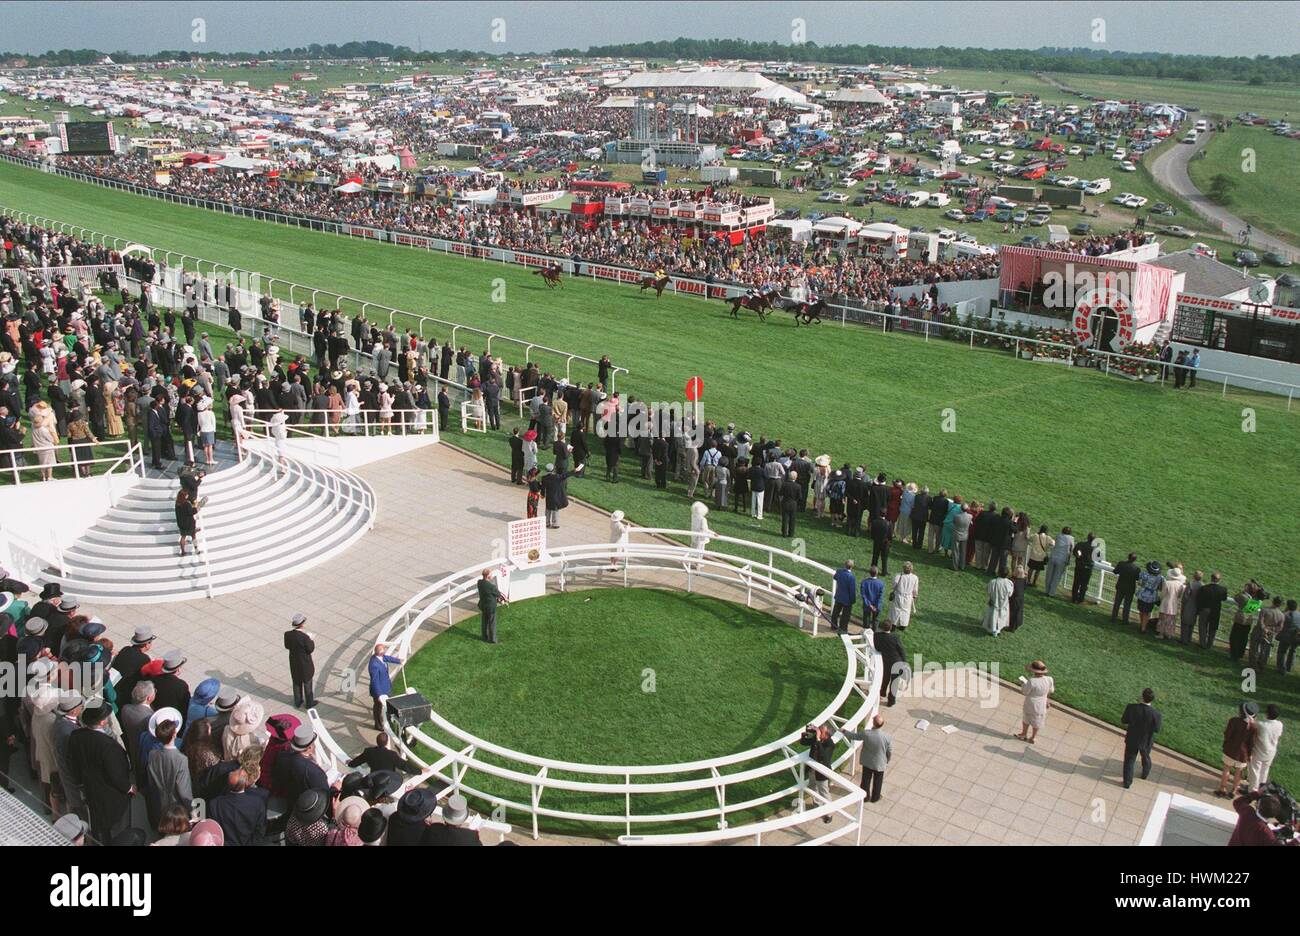 EPSOM ON SUNDAY 10.6.95 GENERAL VIEW FROM GRANDSTAND 17 June 1995 - Stock Image